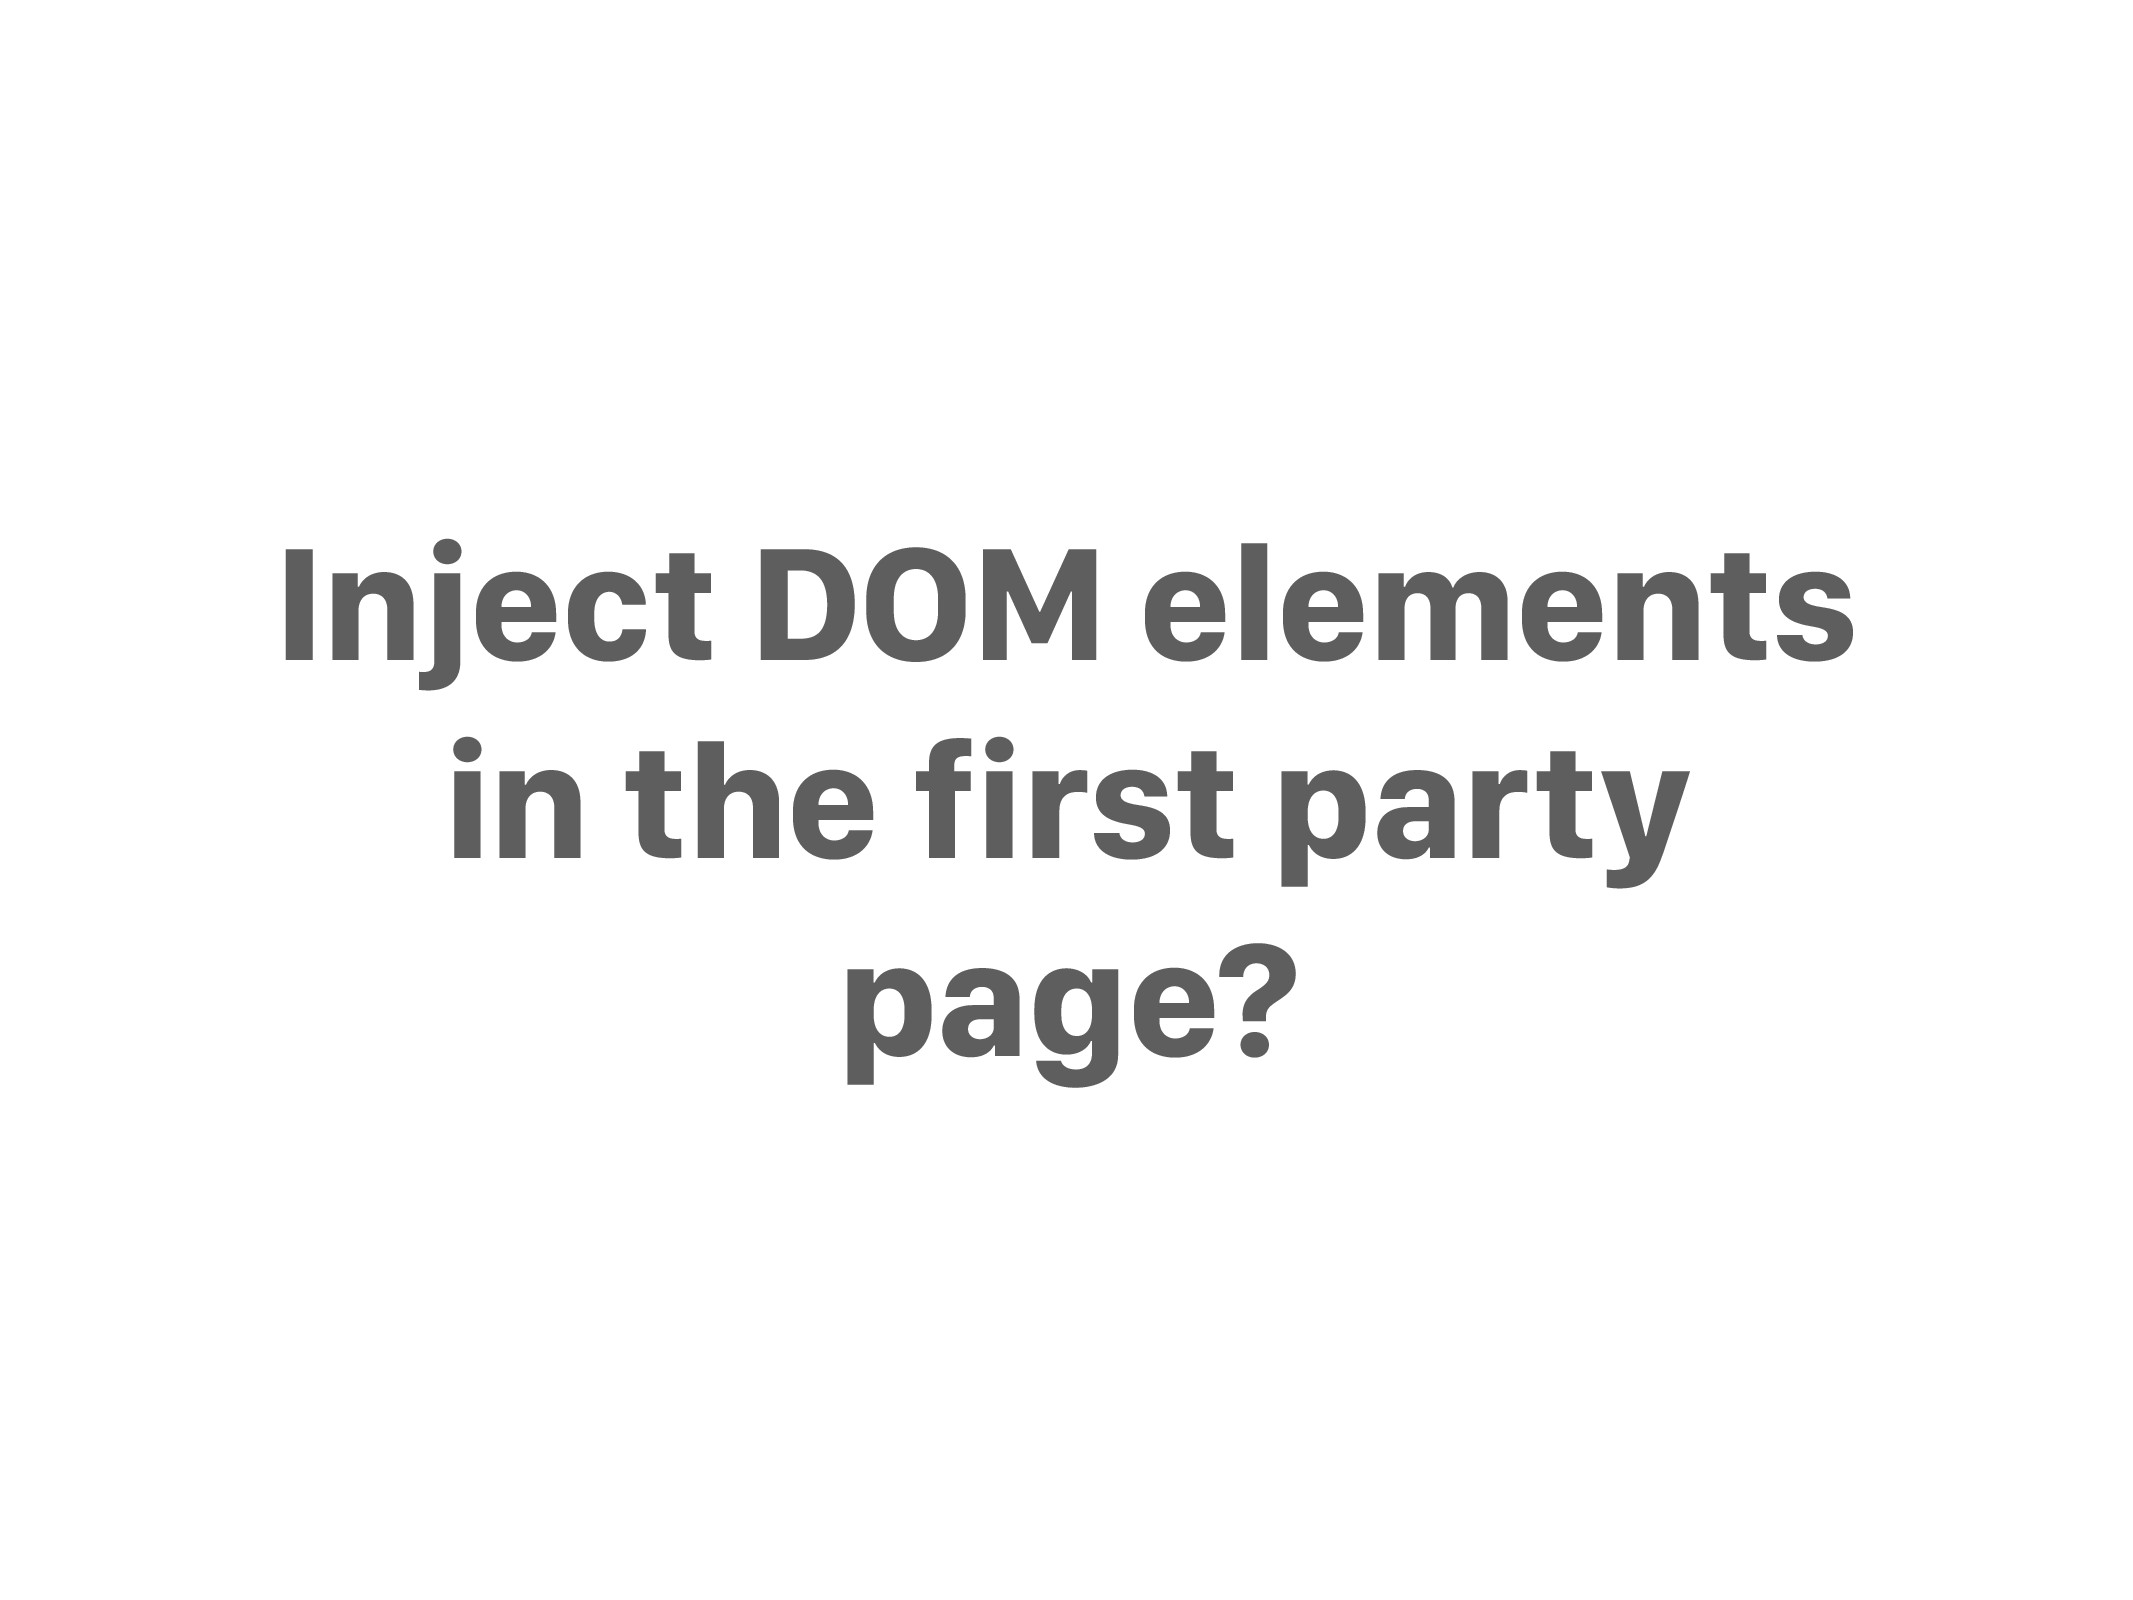 Inject DOM elements in the first party page?